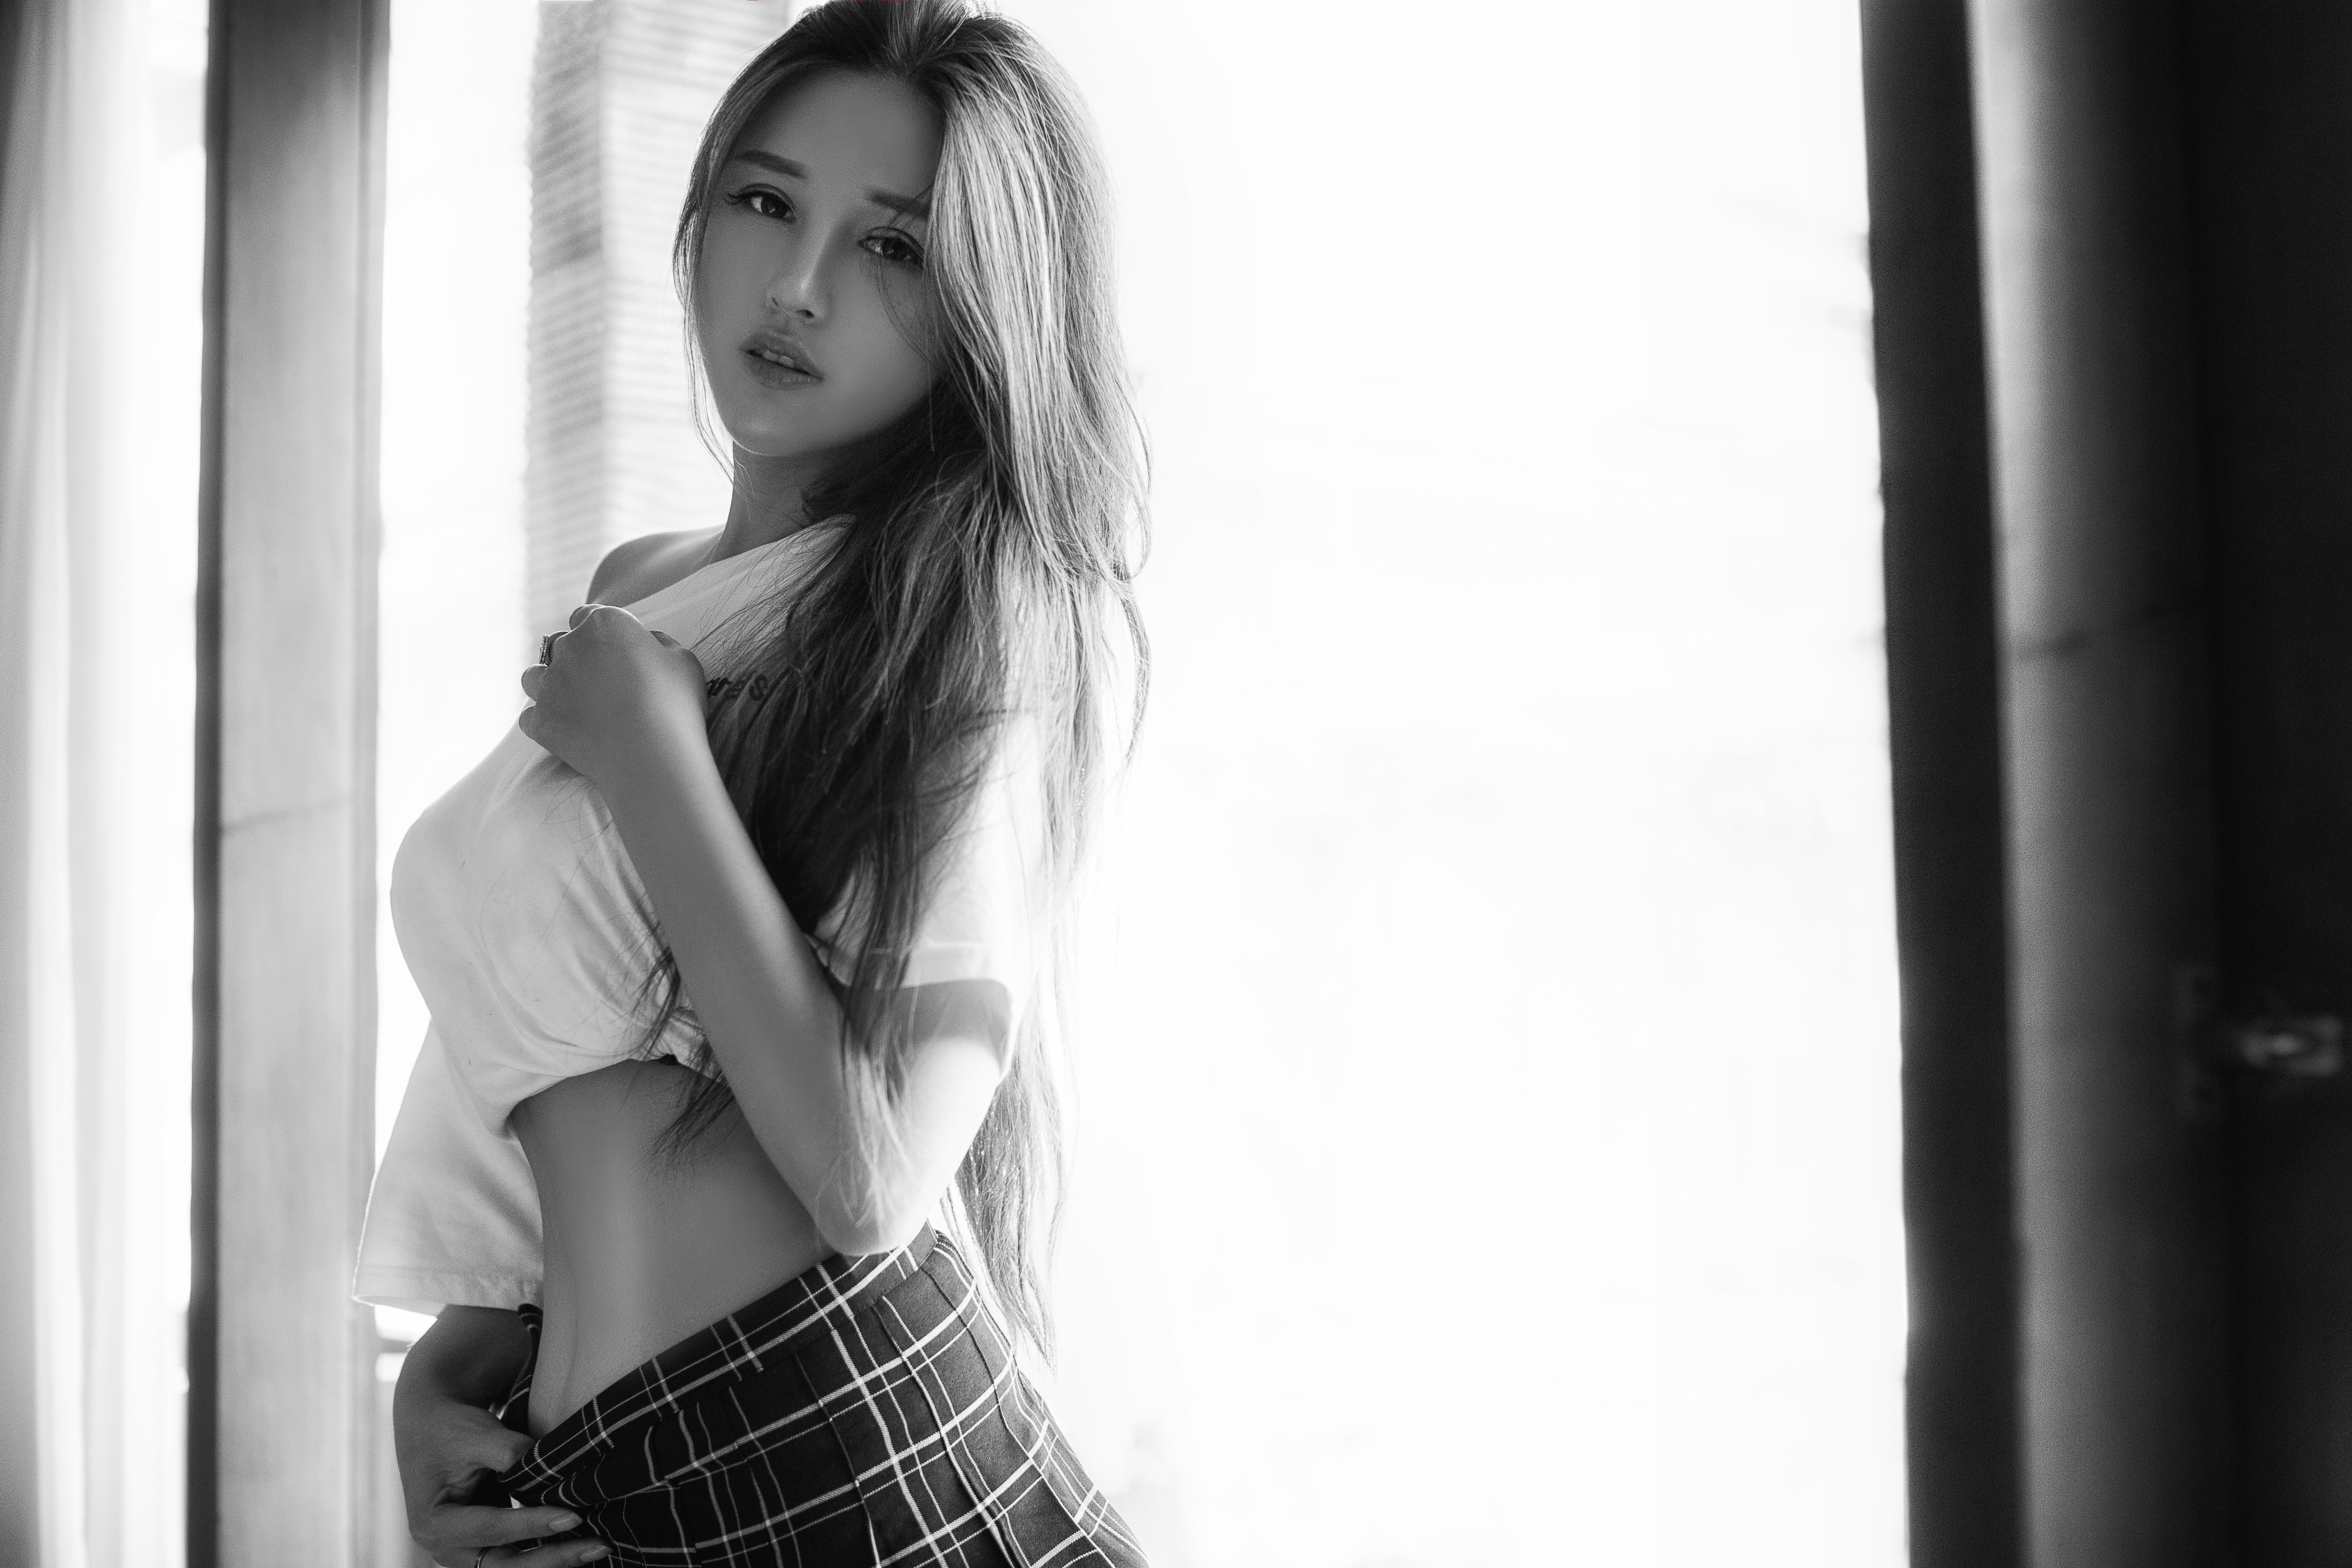 Gray scale photography of a woman wearing white crop top